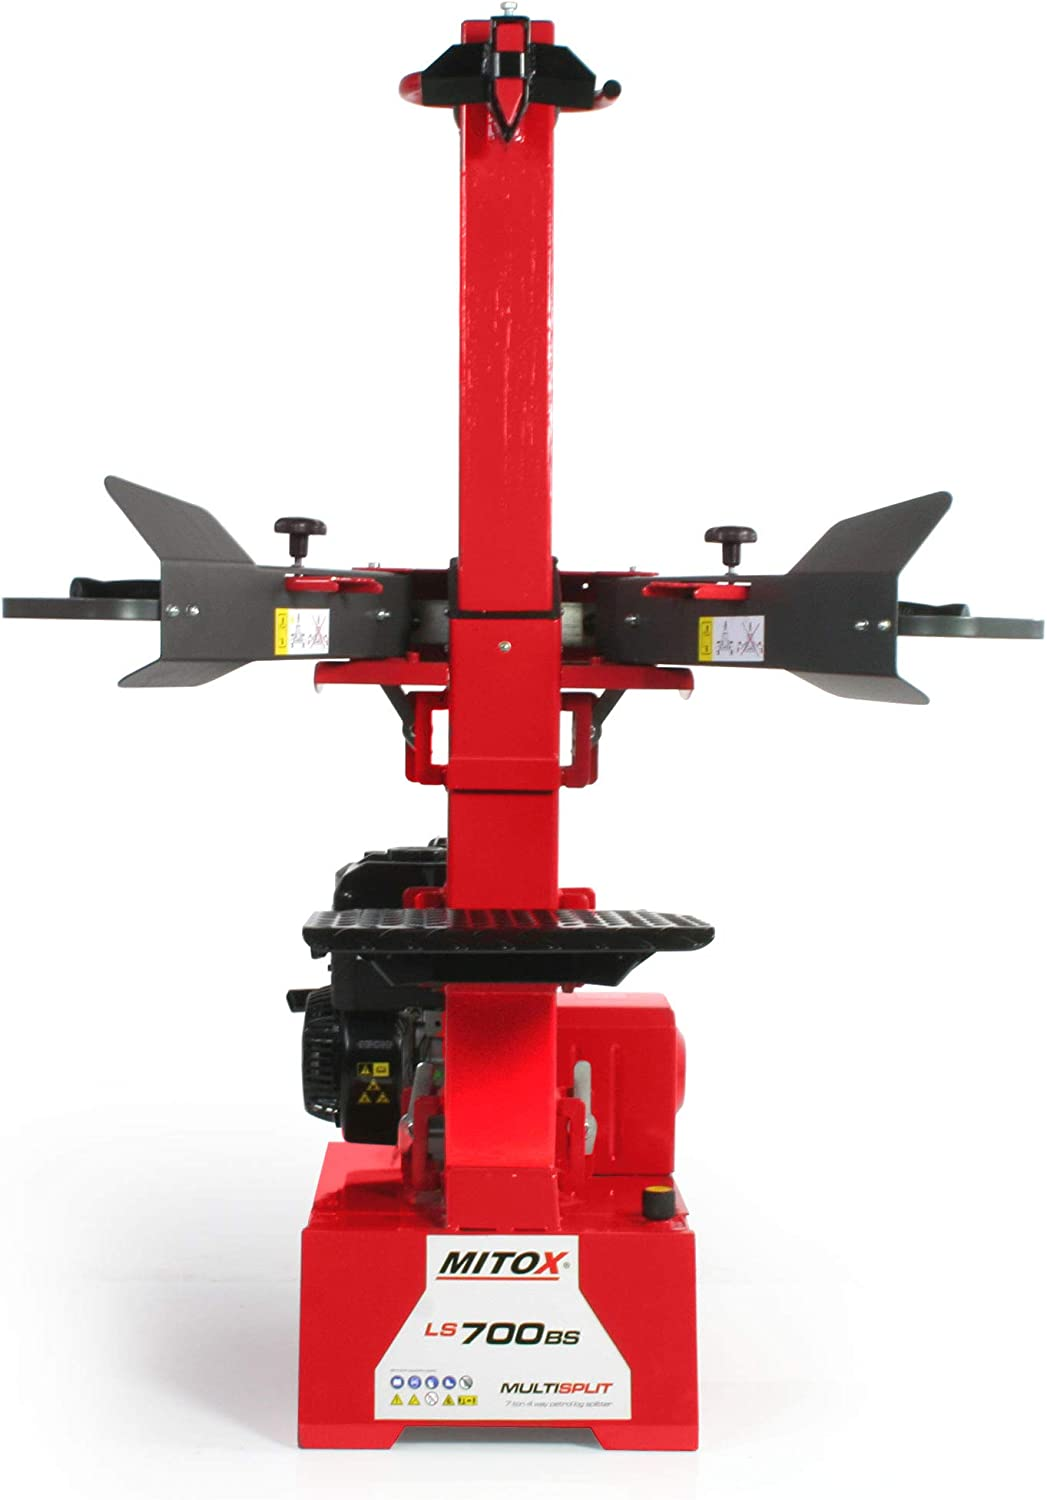 MITOX-LS700BS-7t-PETROL-VERTICAL-LOG-SPLITTER